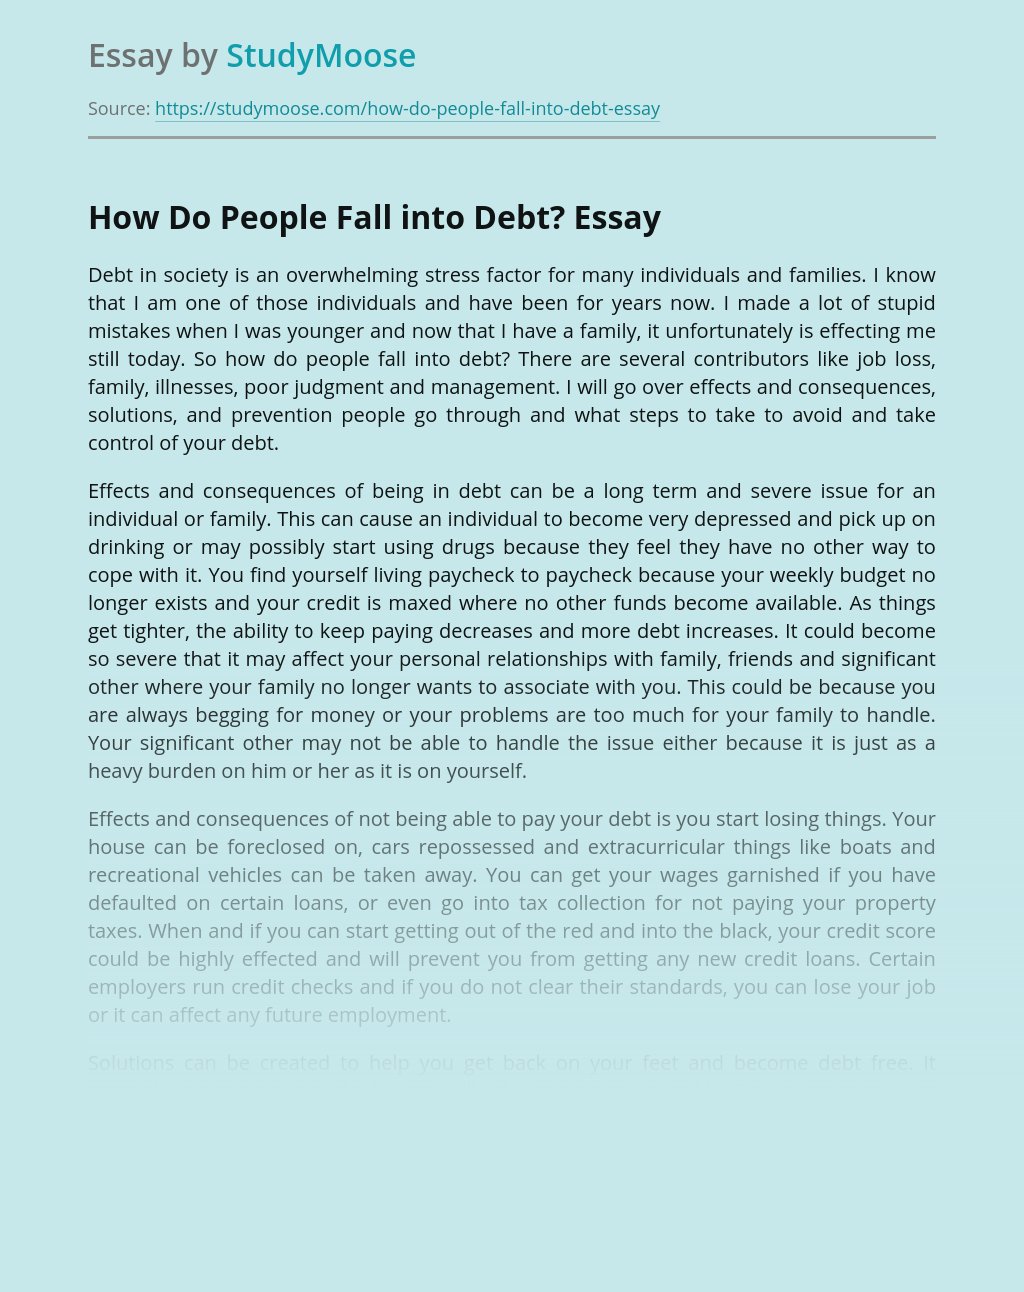 How Do People Fall into Debt?